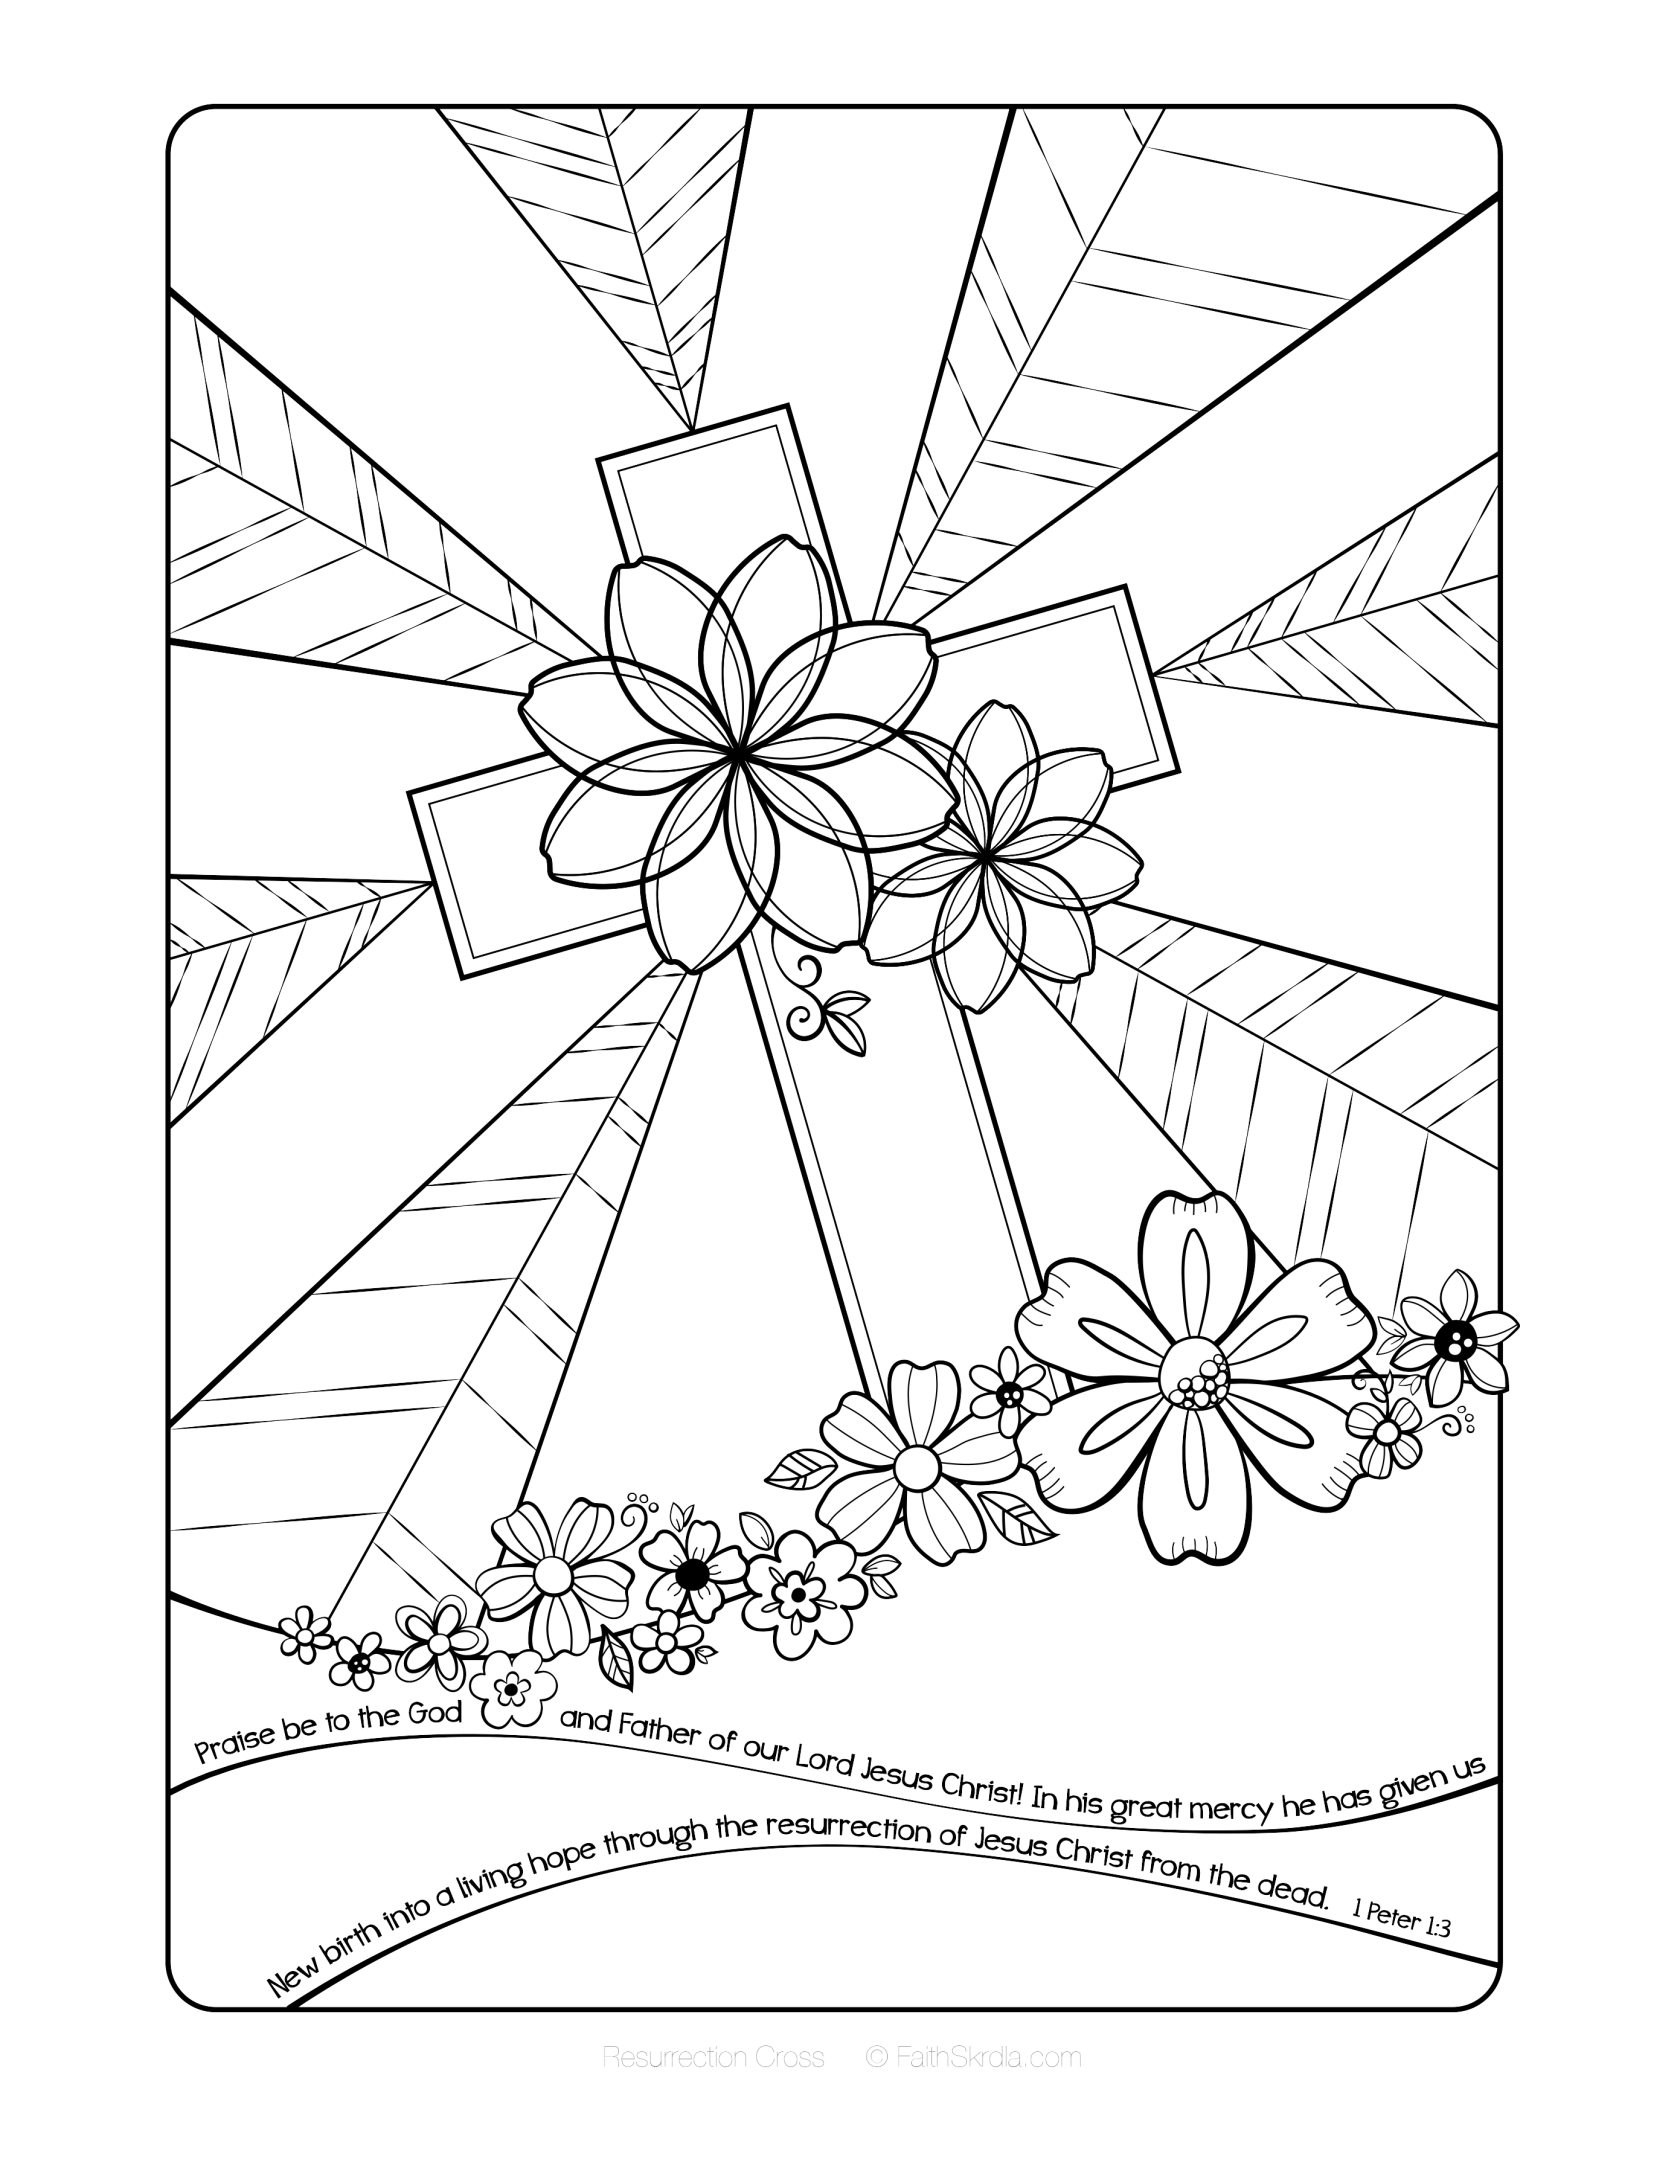 Free Easter Adult Coloring Page by Faith Skrdla Resurrection Cross 1 Collection Of Awesome isaac and Rebekah Coloring Pages Design Collection